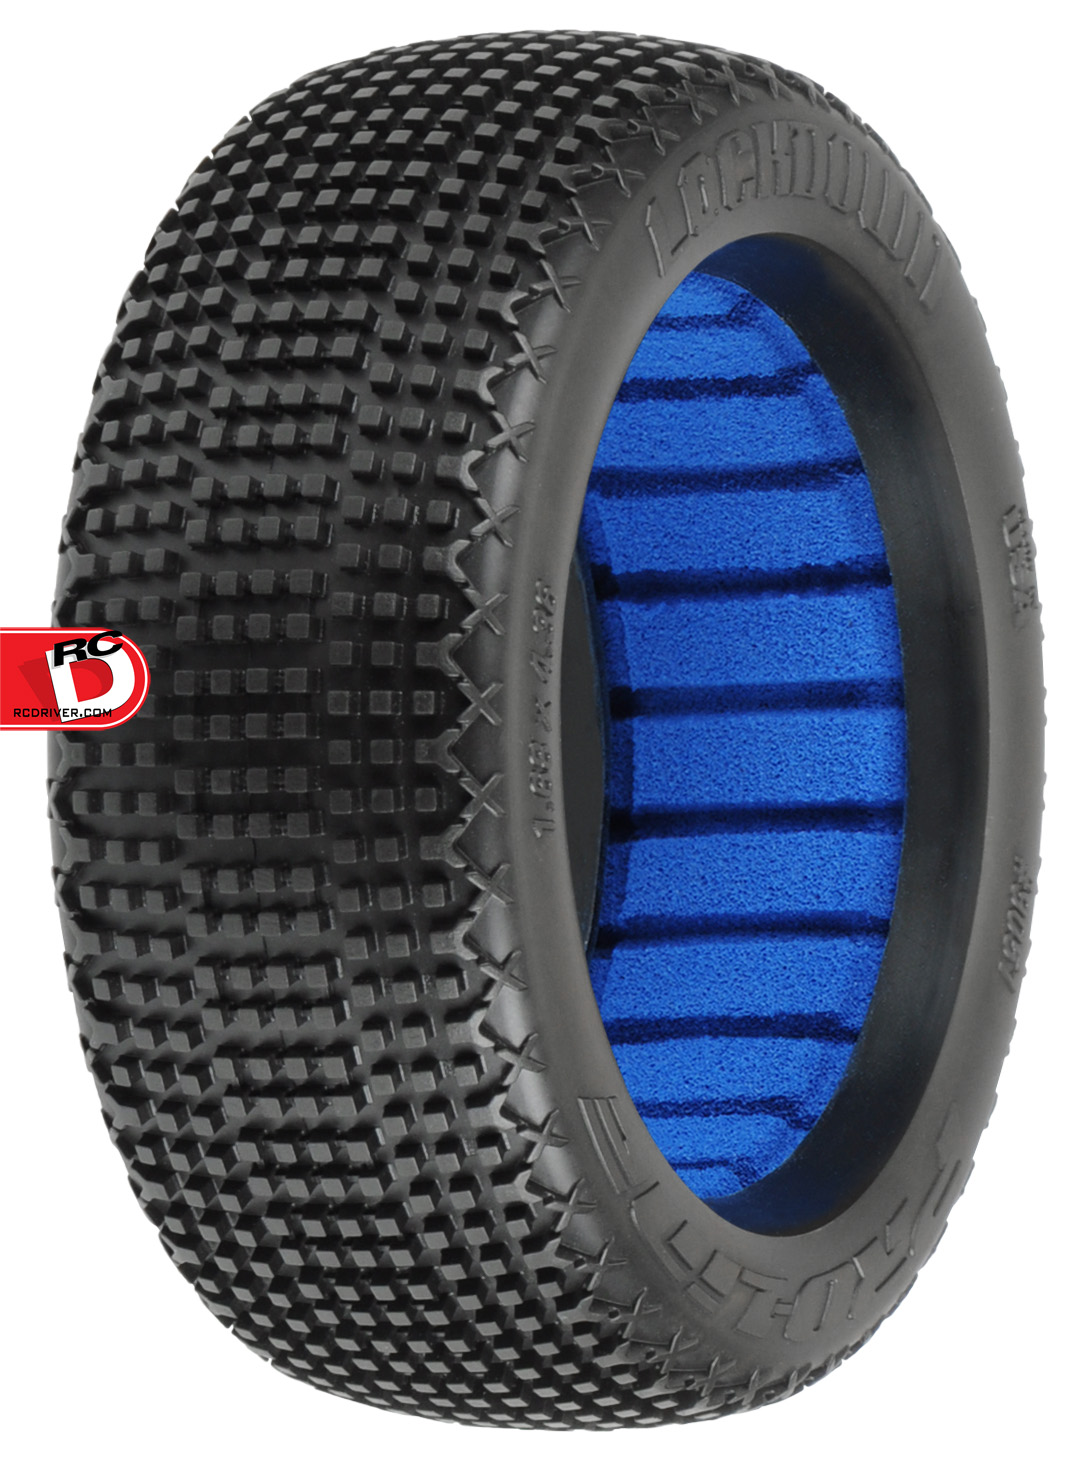 Pro-Line – LockDown 1:8 Buggy Tire